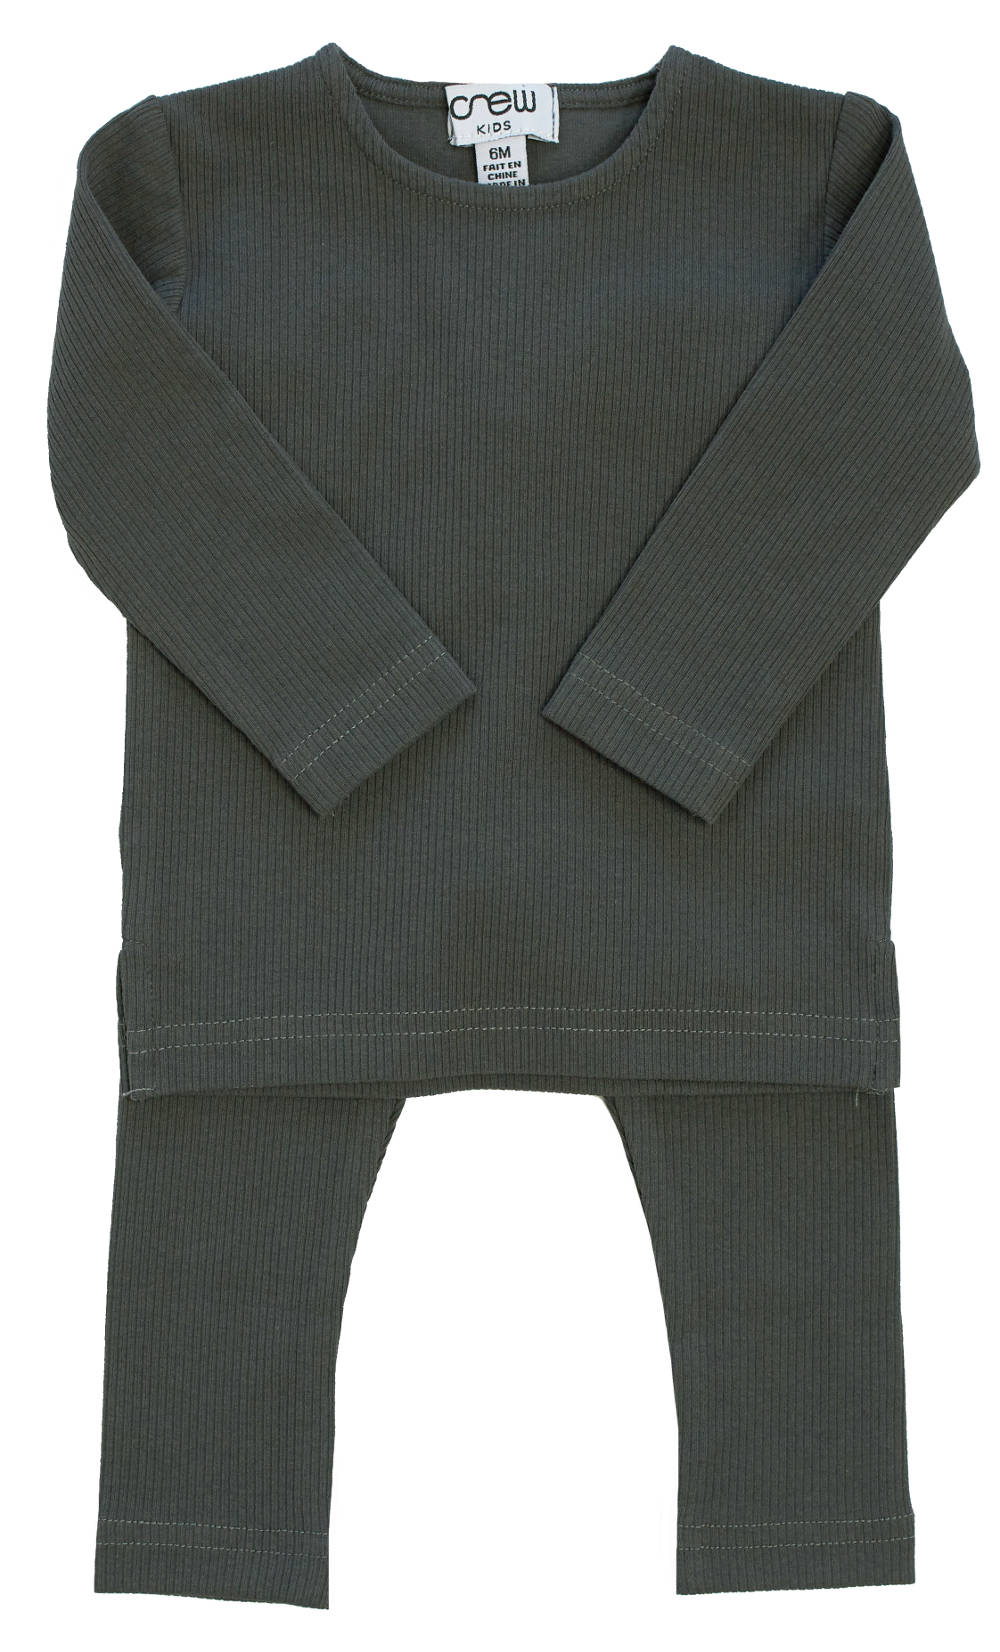 Crew Charcoal Ribbed Set